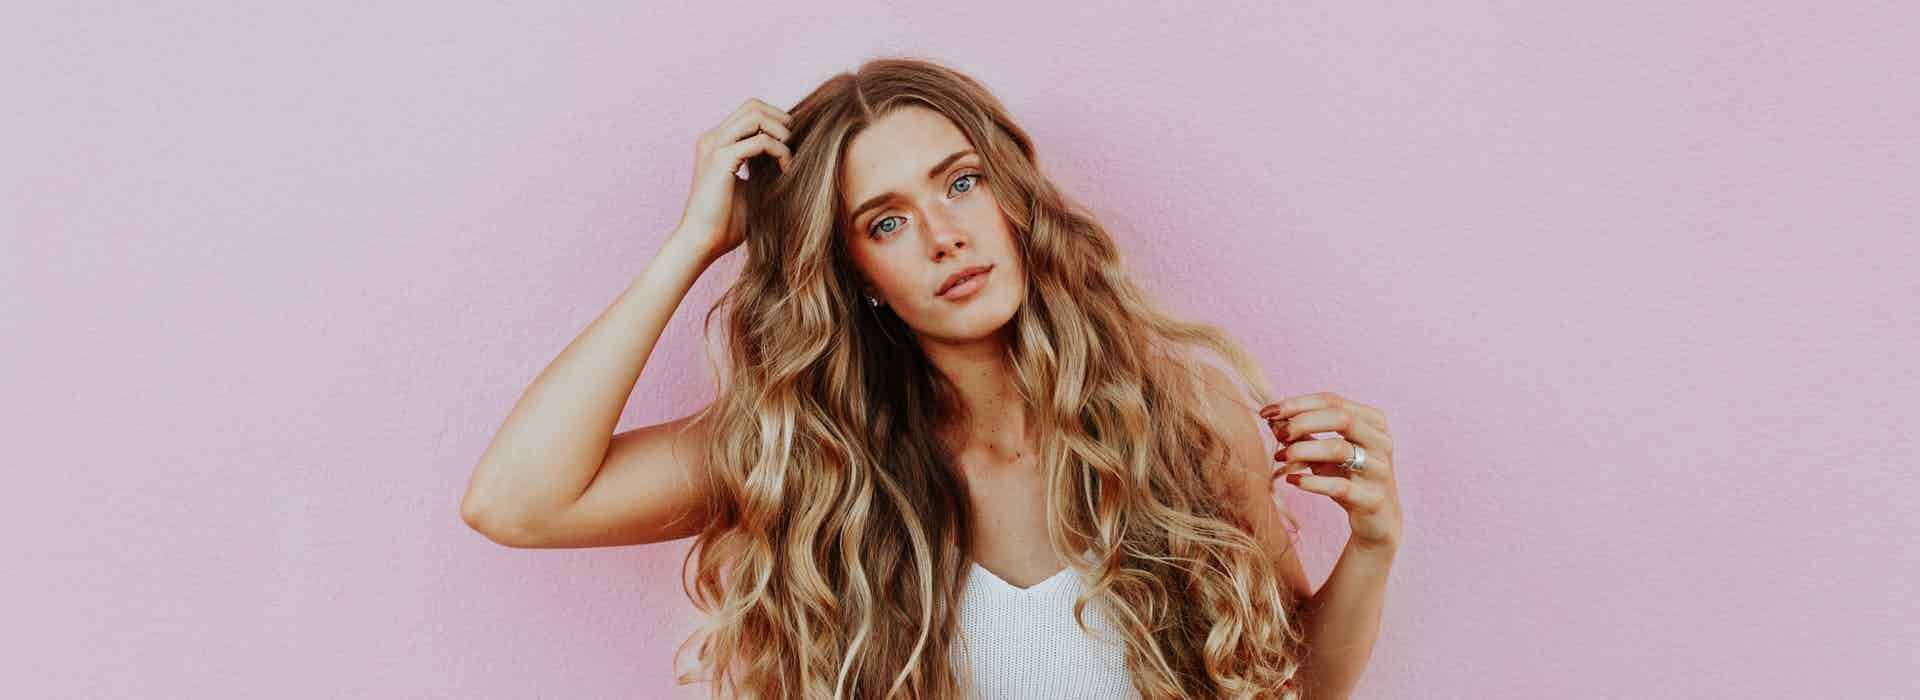 Best hair rollers for 2018 hot roller reviews and ratings updated best hair rollers for 2018 hot roller reviews and ratings urmus Gallery